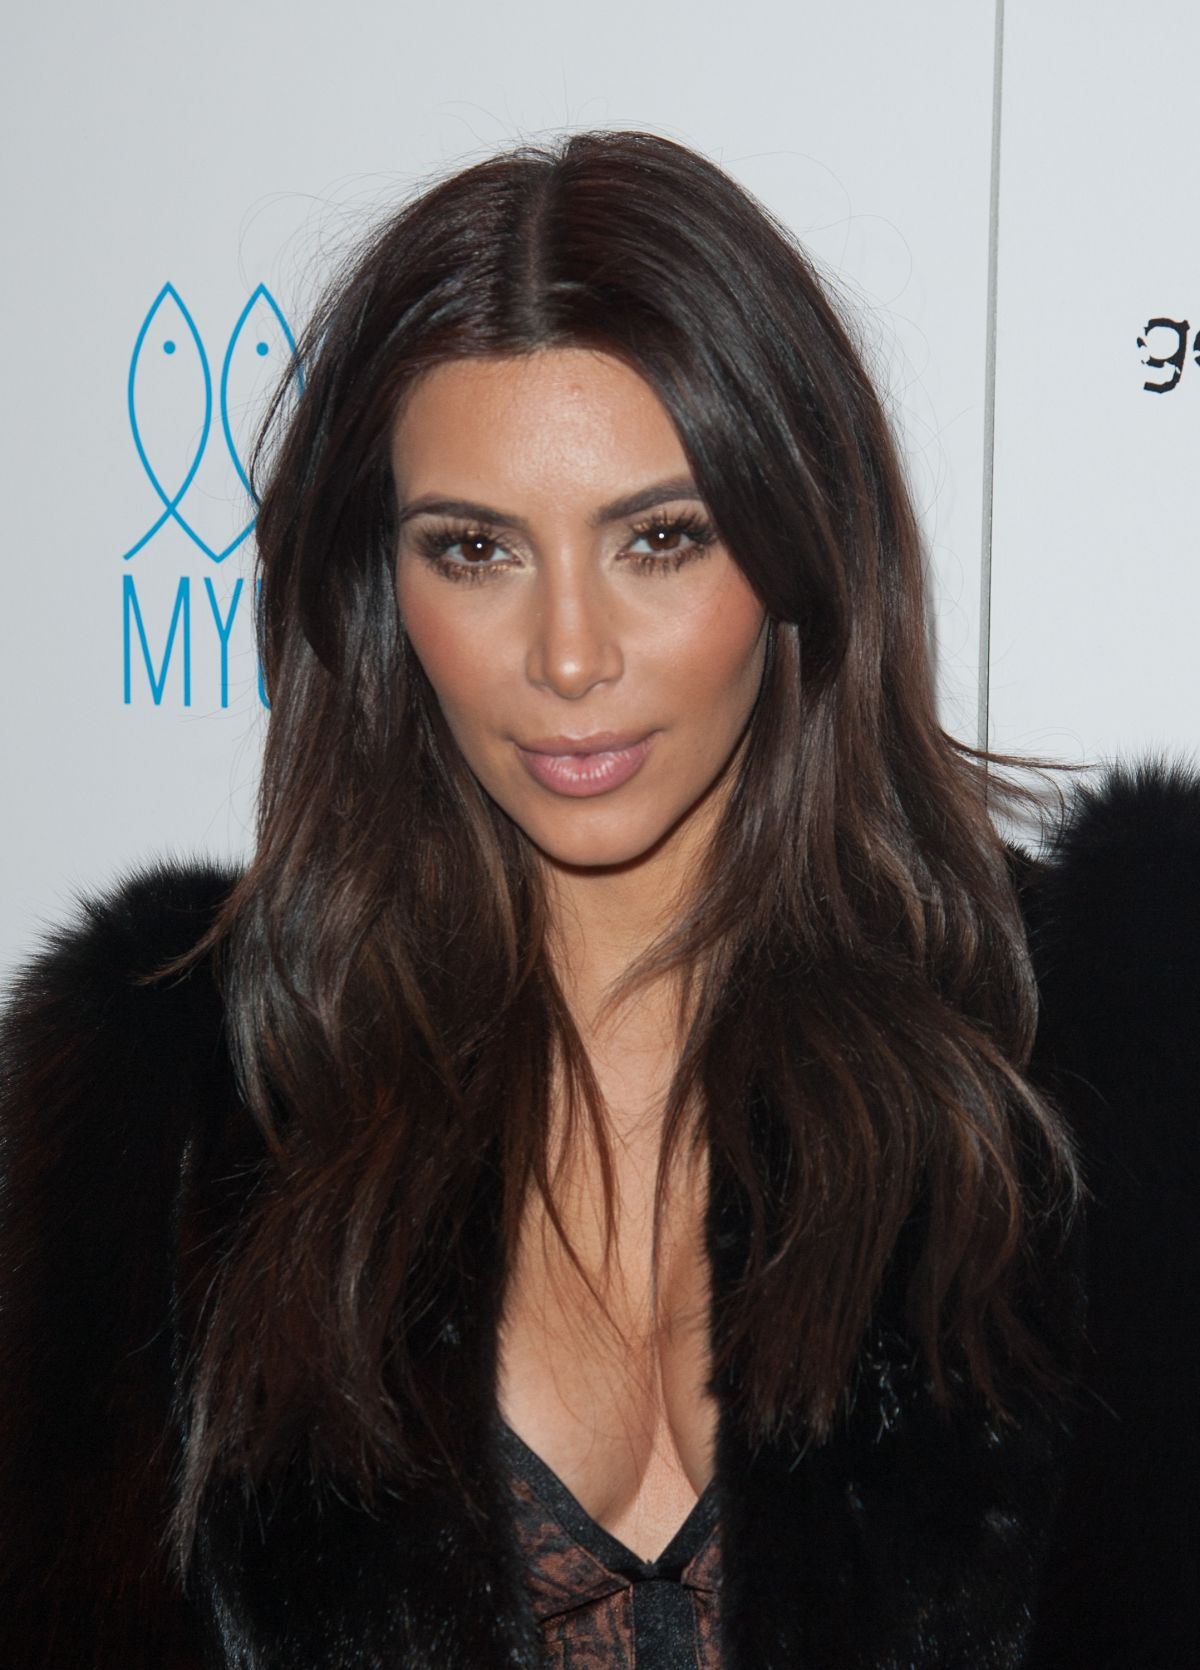 KIM KARDASHIAN at Generation NXT Charity Benefit in New York